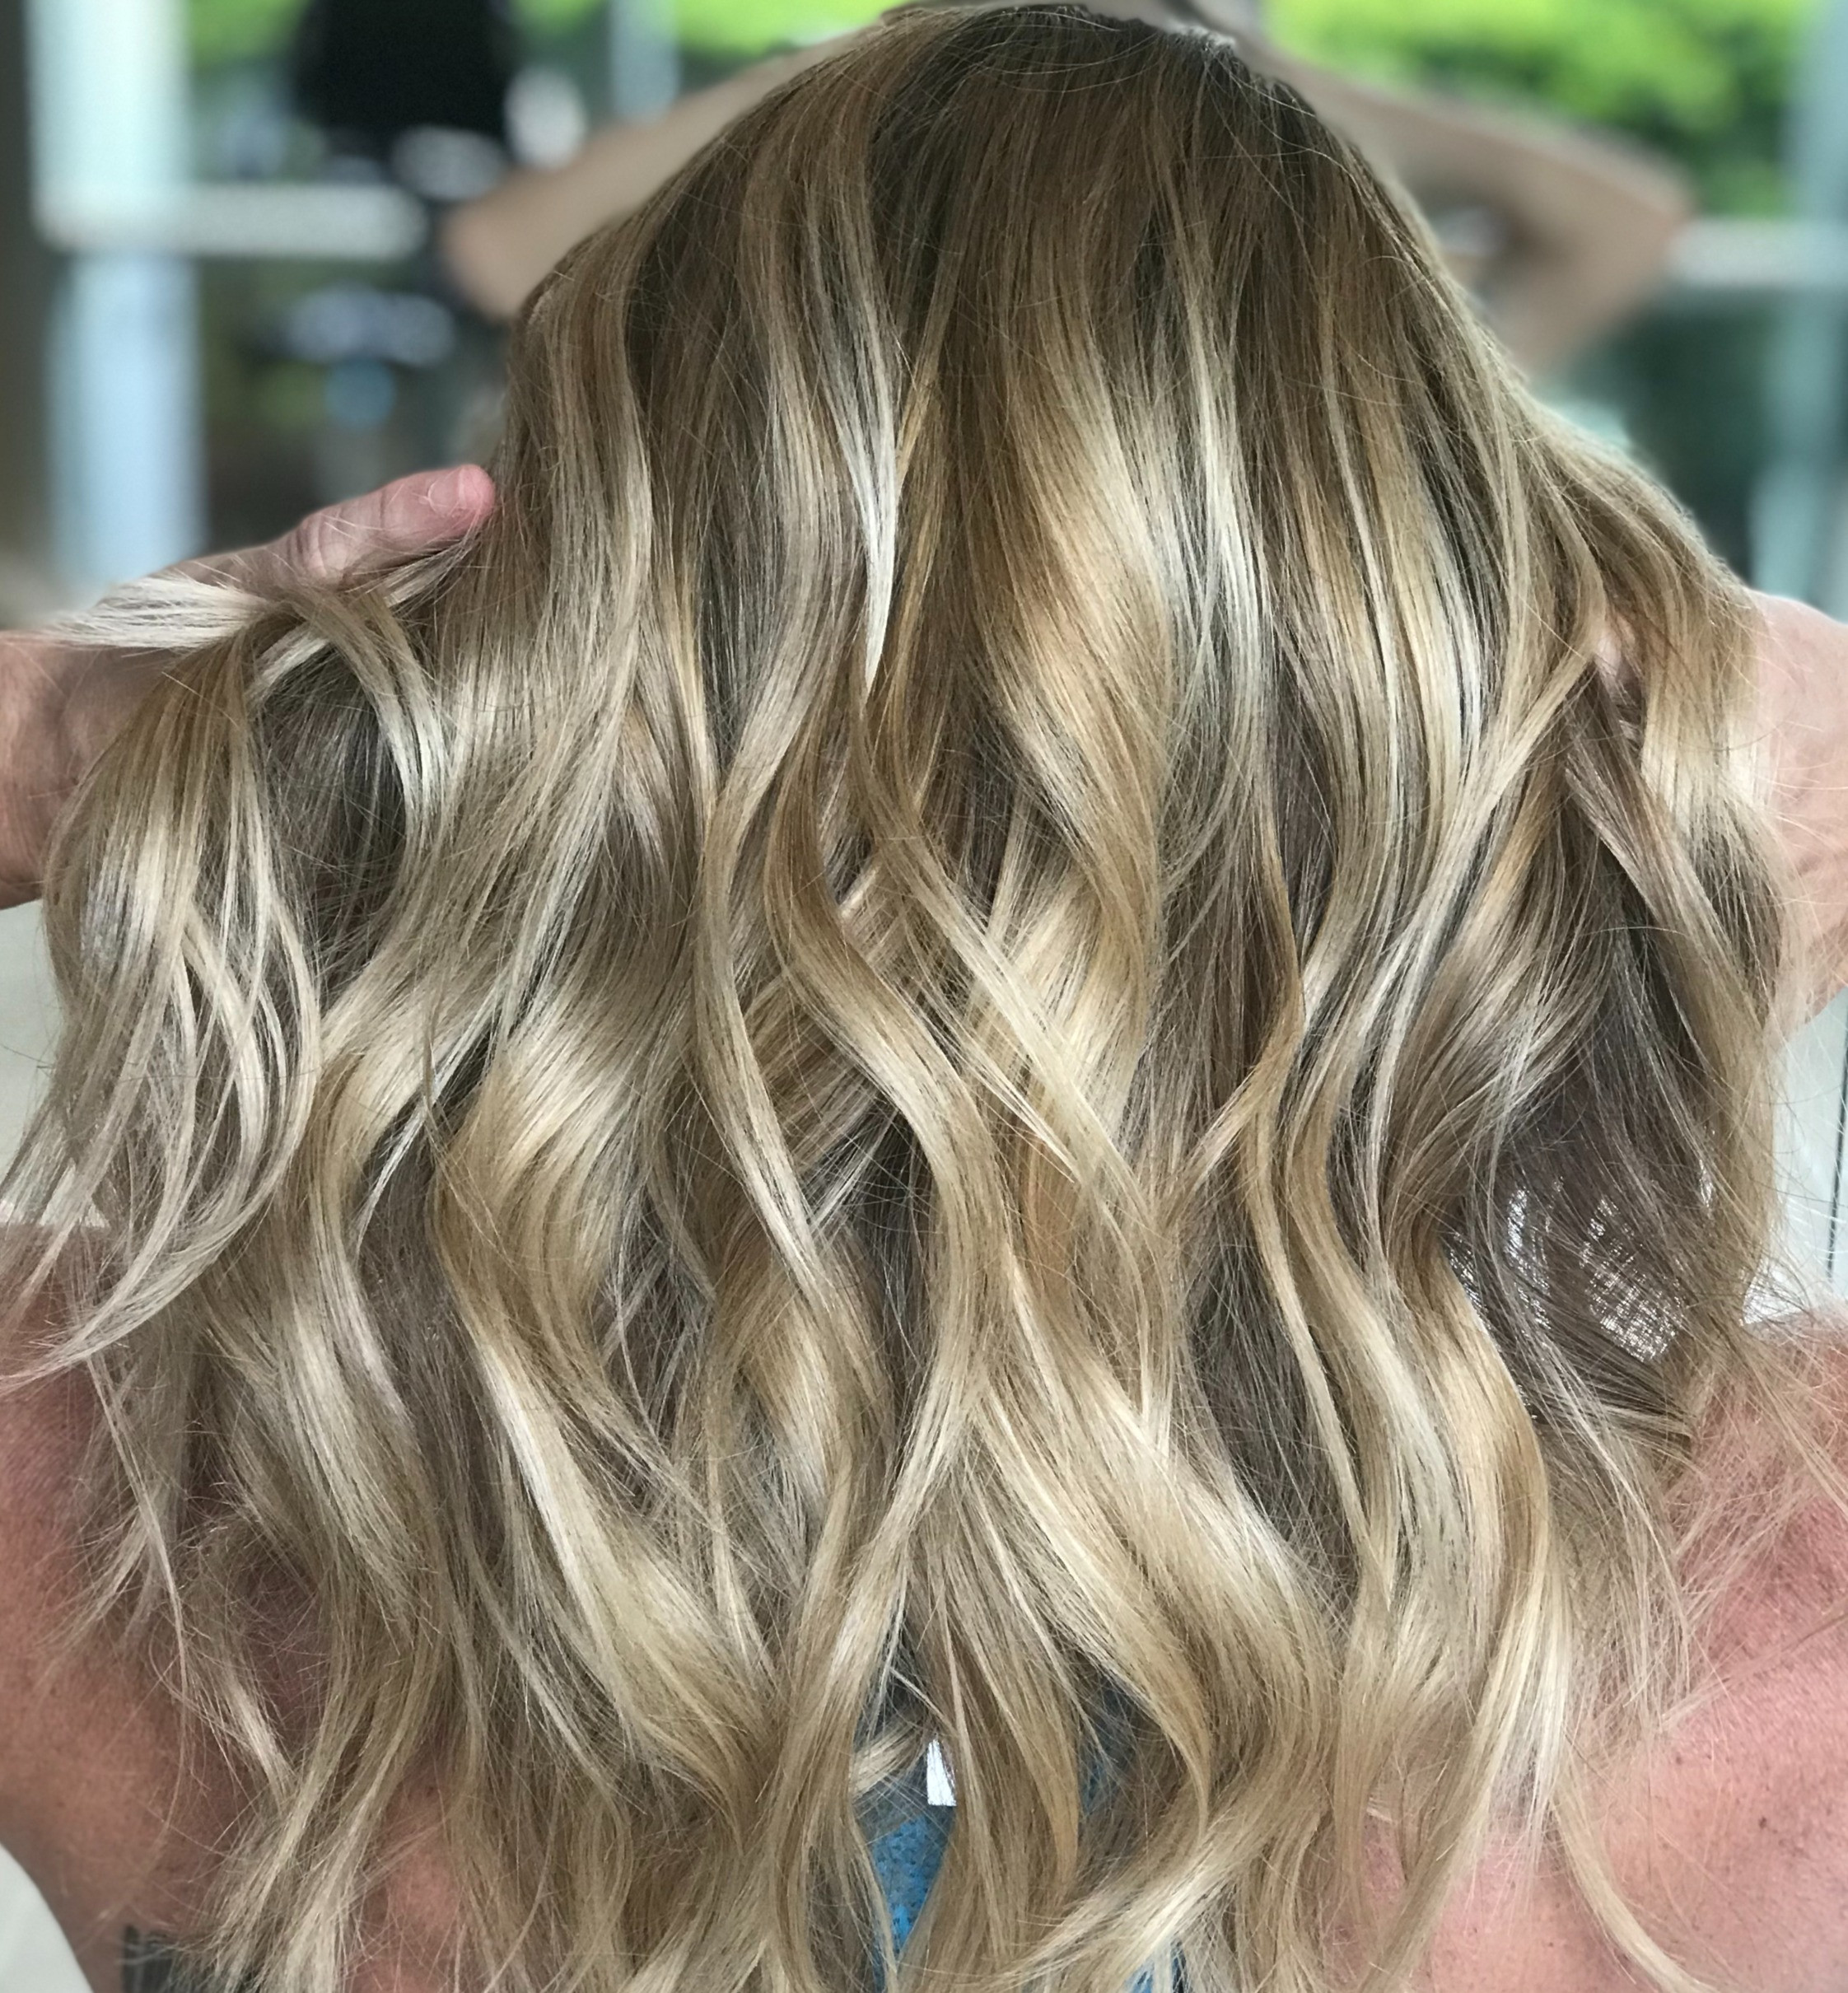 Hair Color Consultation